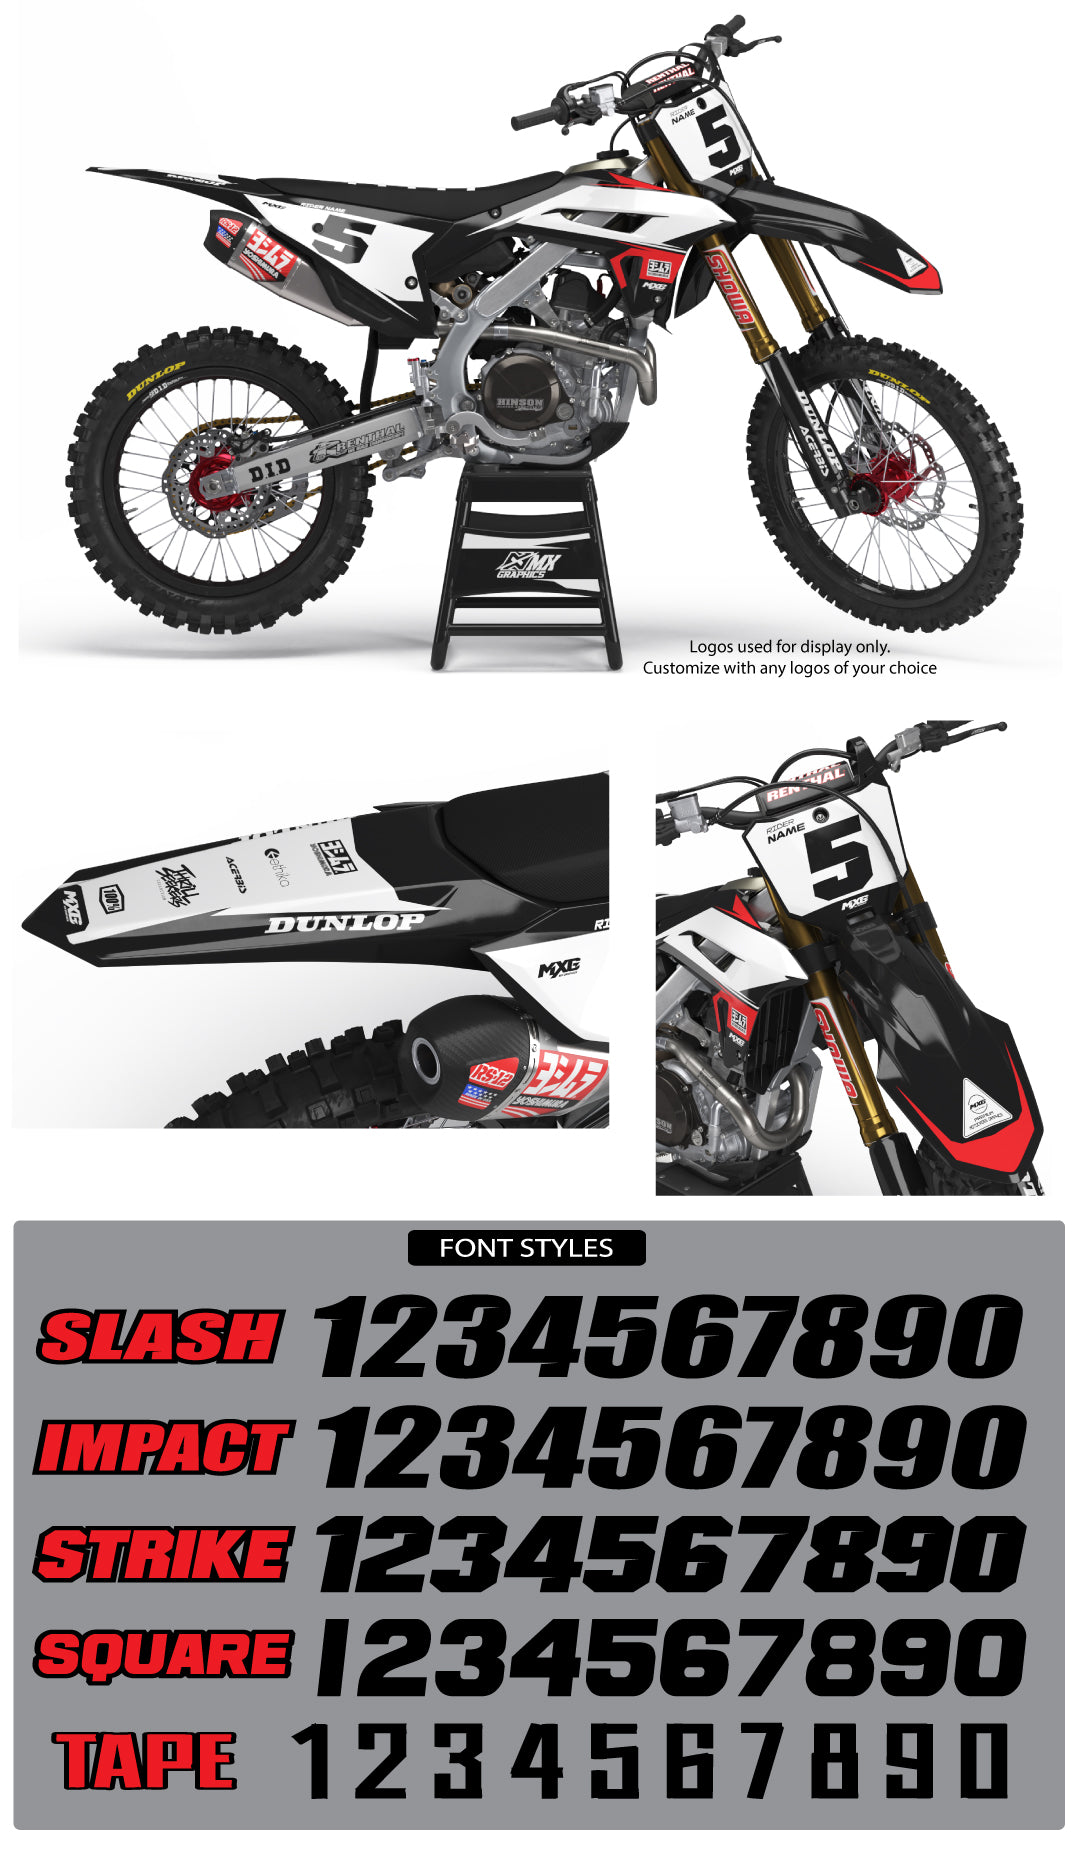 Stock Graphic Kit Black for Honda's